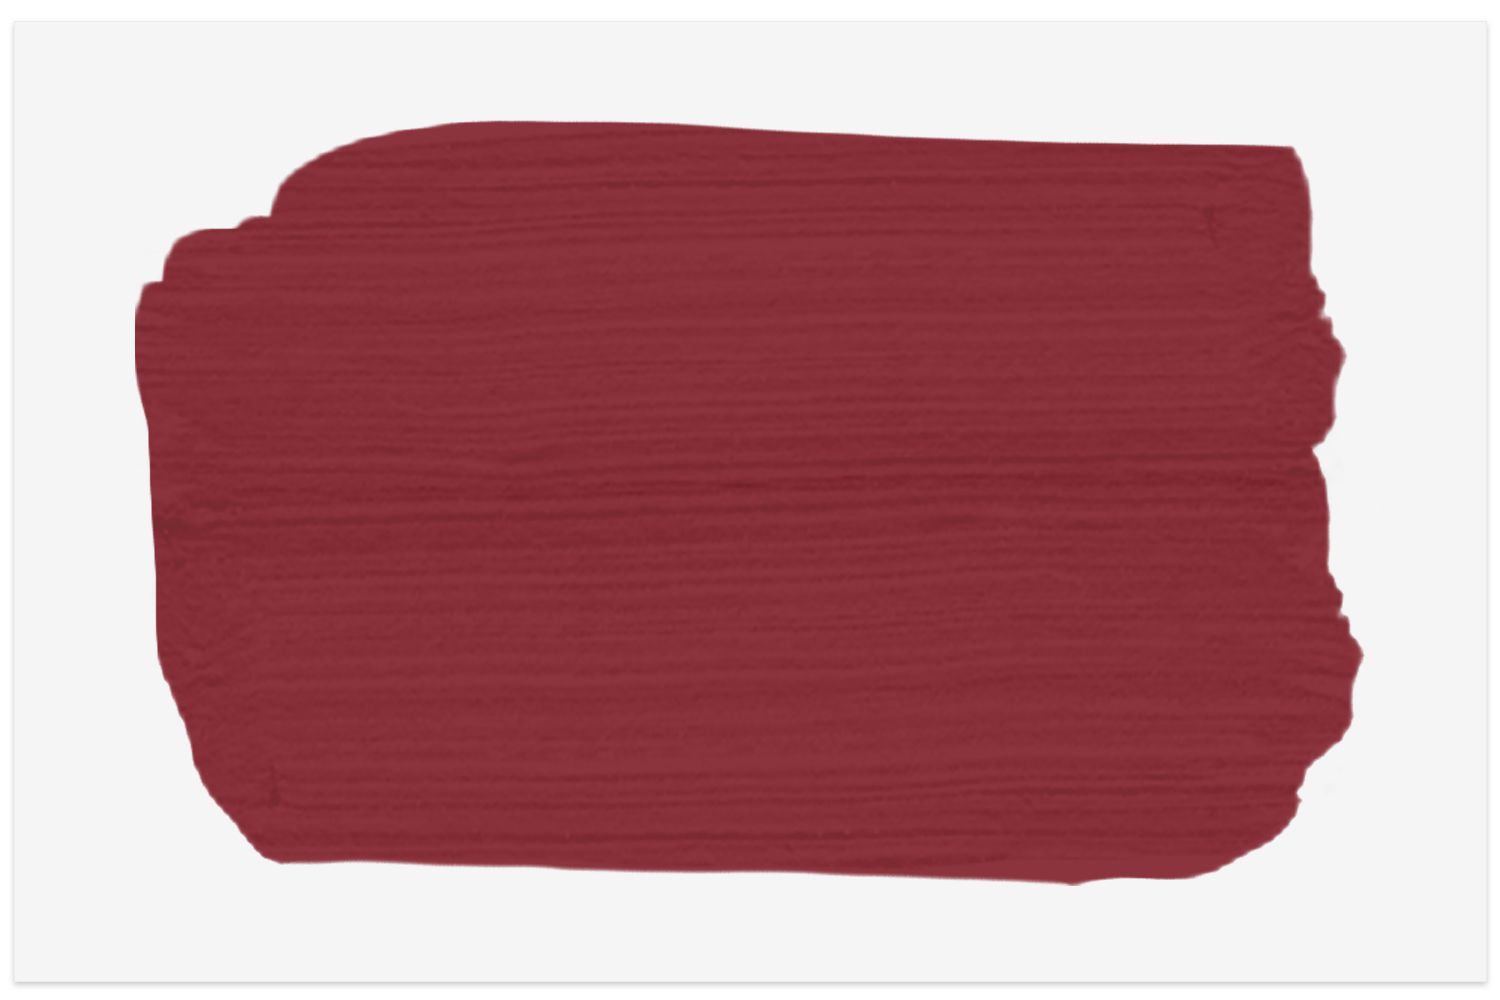 Glidden Red Delicious 00YR 08/409 paint swatch